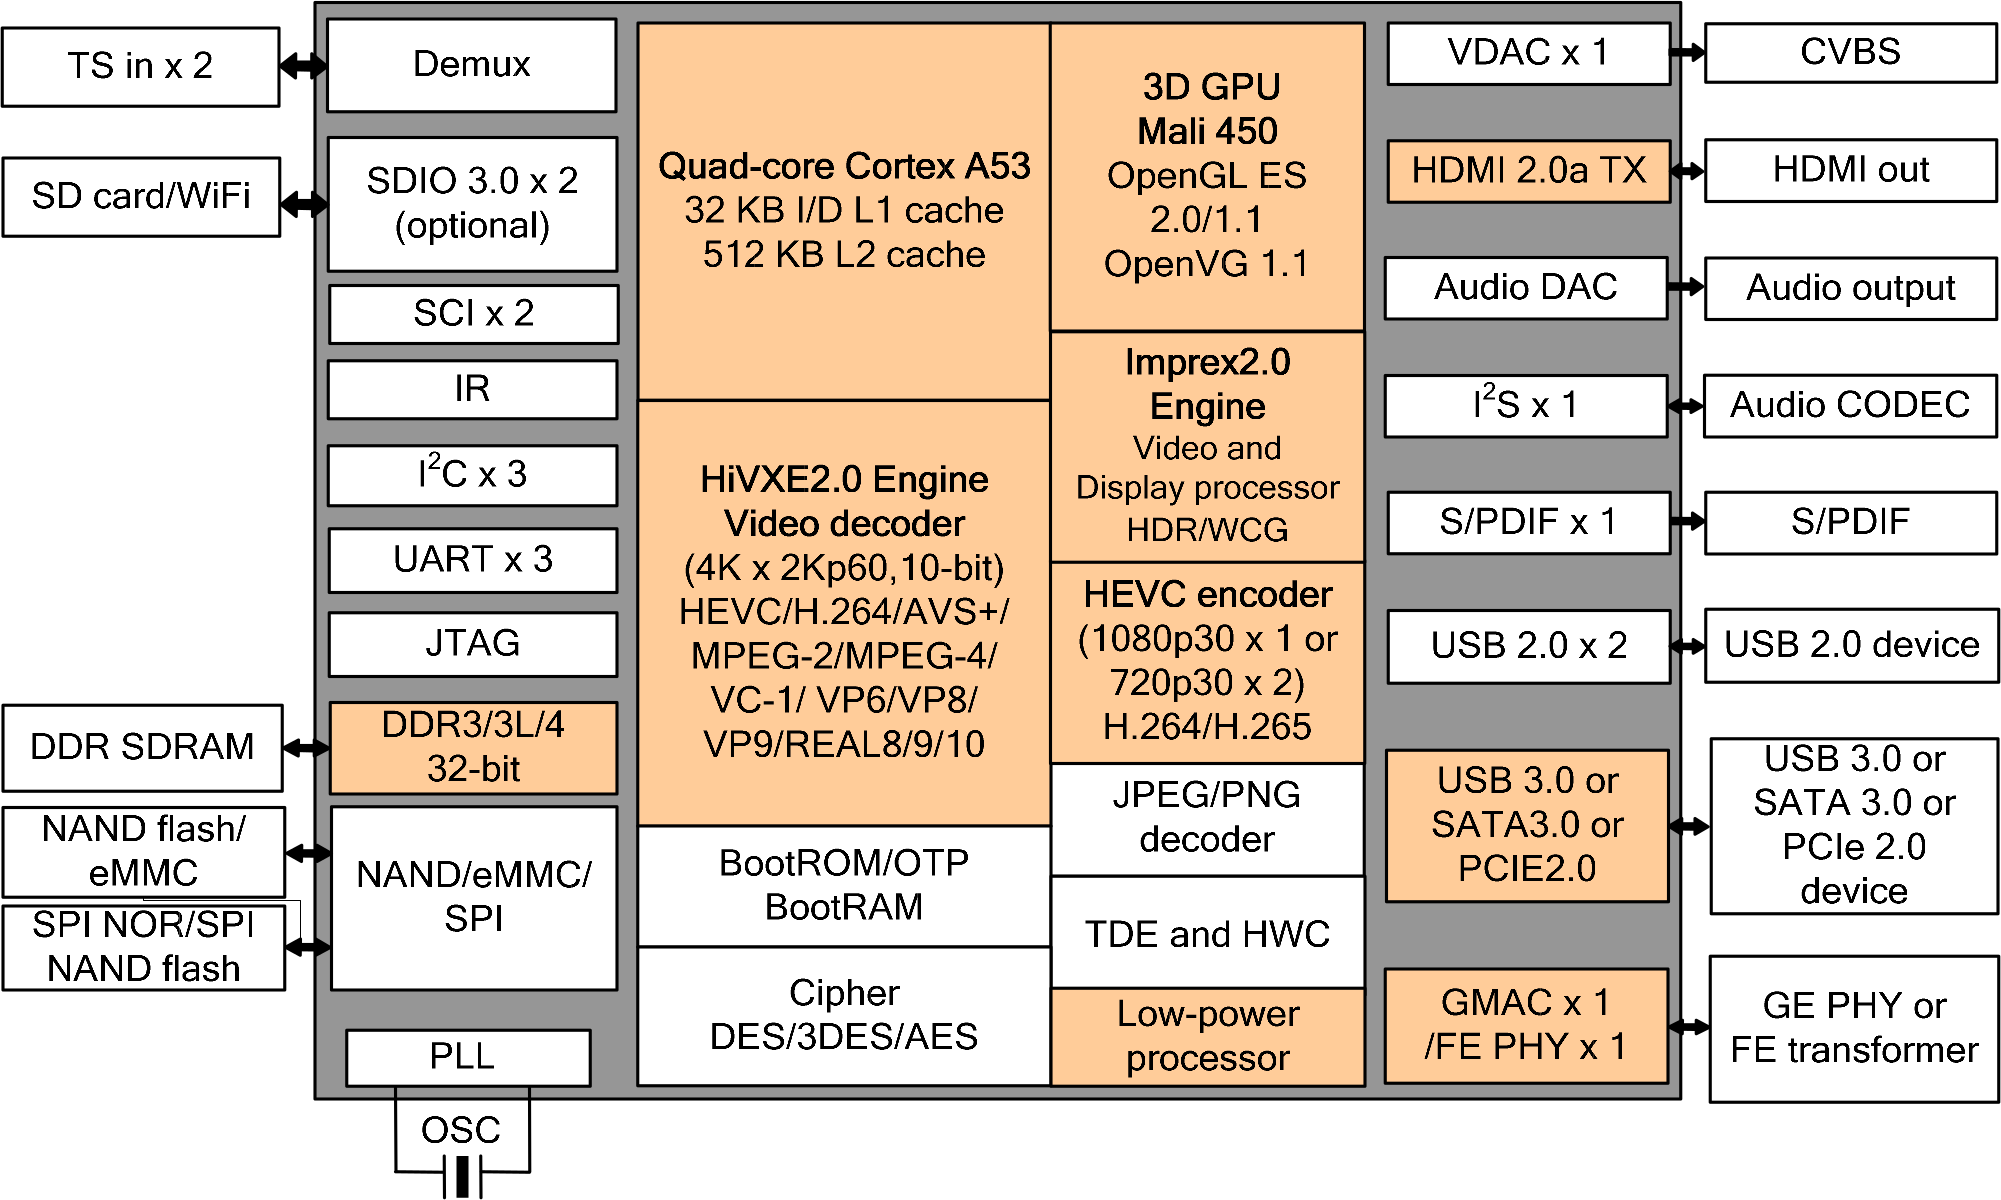 Hi3798M V200 Block Diagram - Click to Enlarge